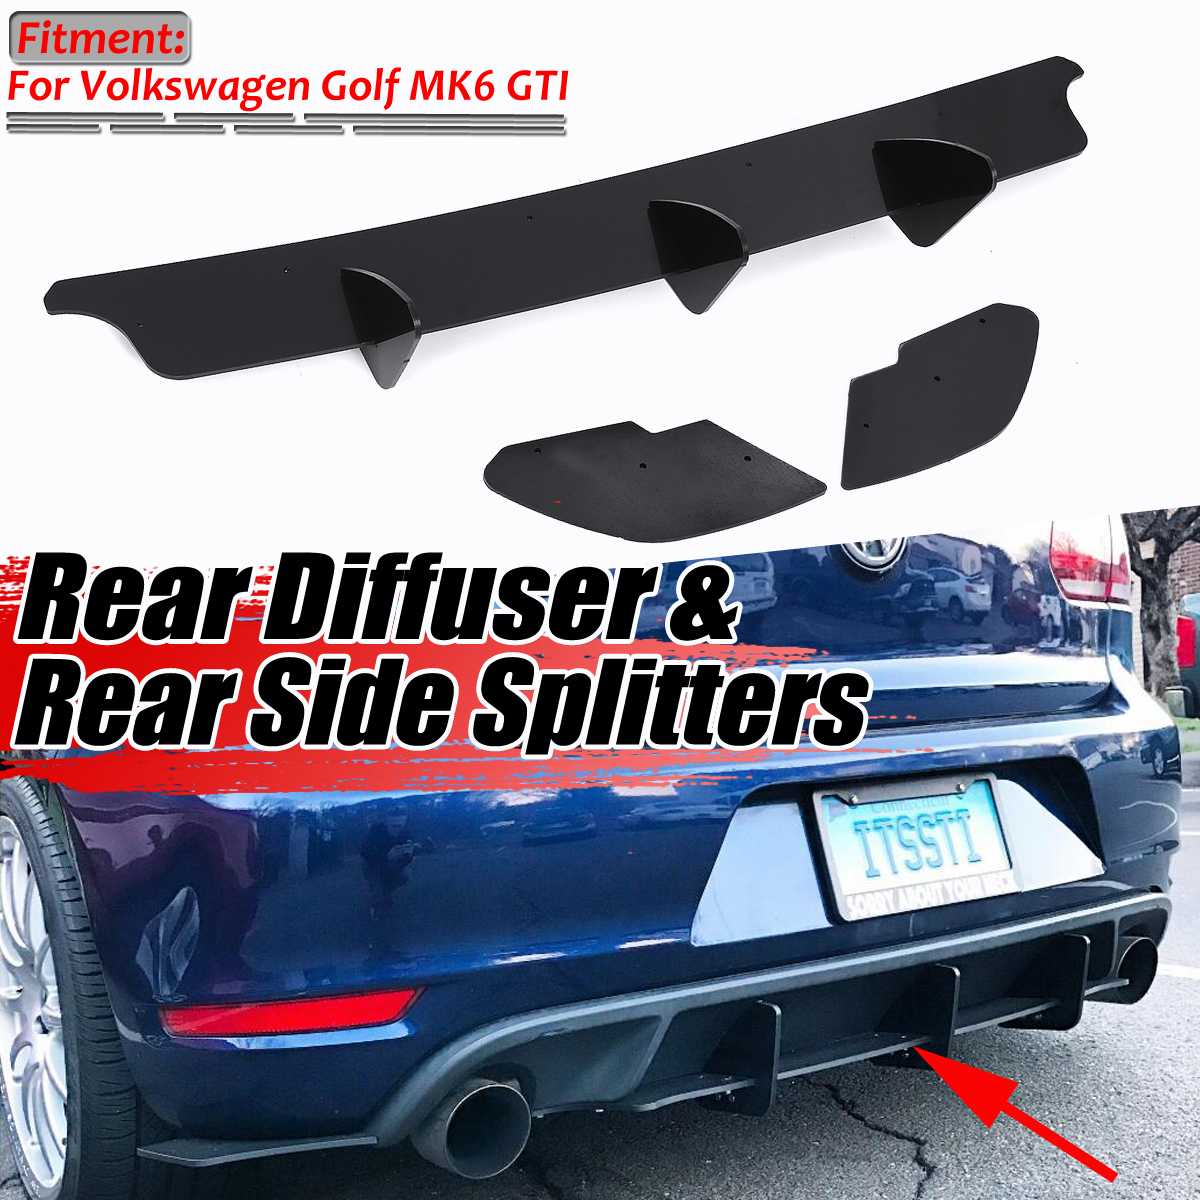 For GTI Car Rear Bumper Diffuser & Rear Side Splitters Spoiler Guard For VW For Volkswagen For Golf MK6 GTI/ MK7 GTI / MK7.5 GTI